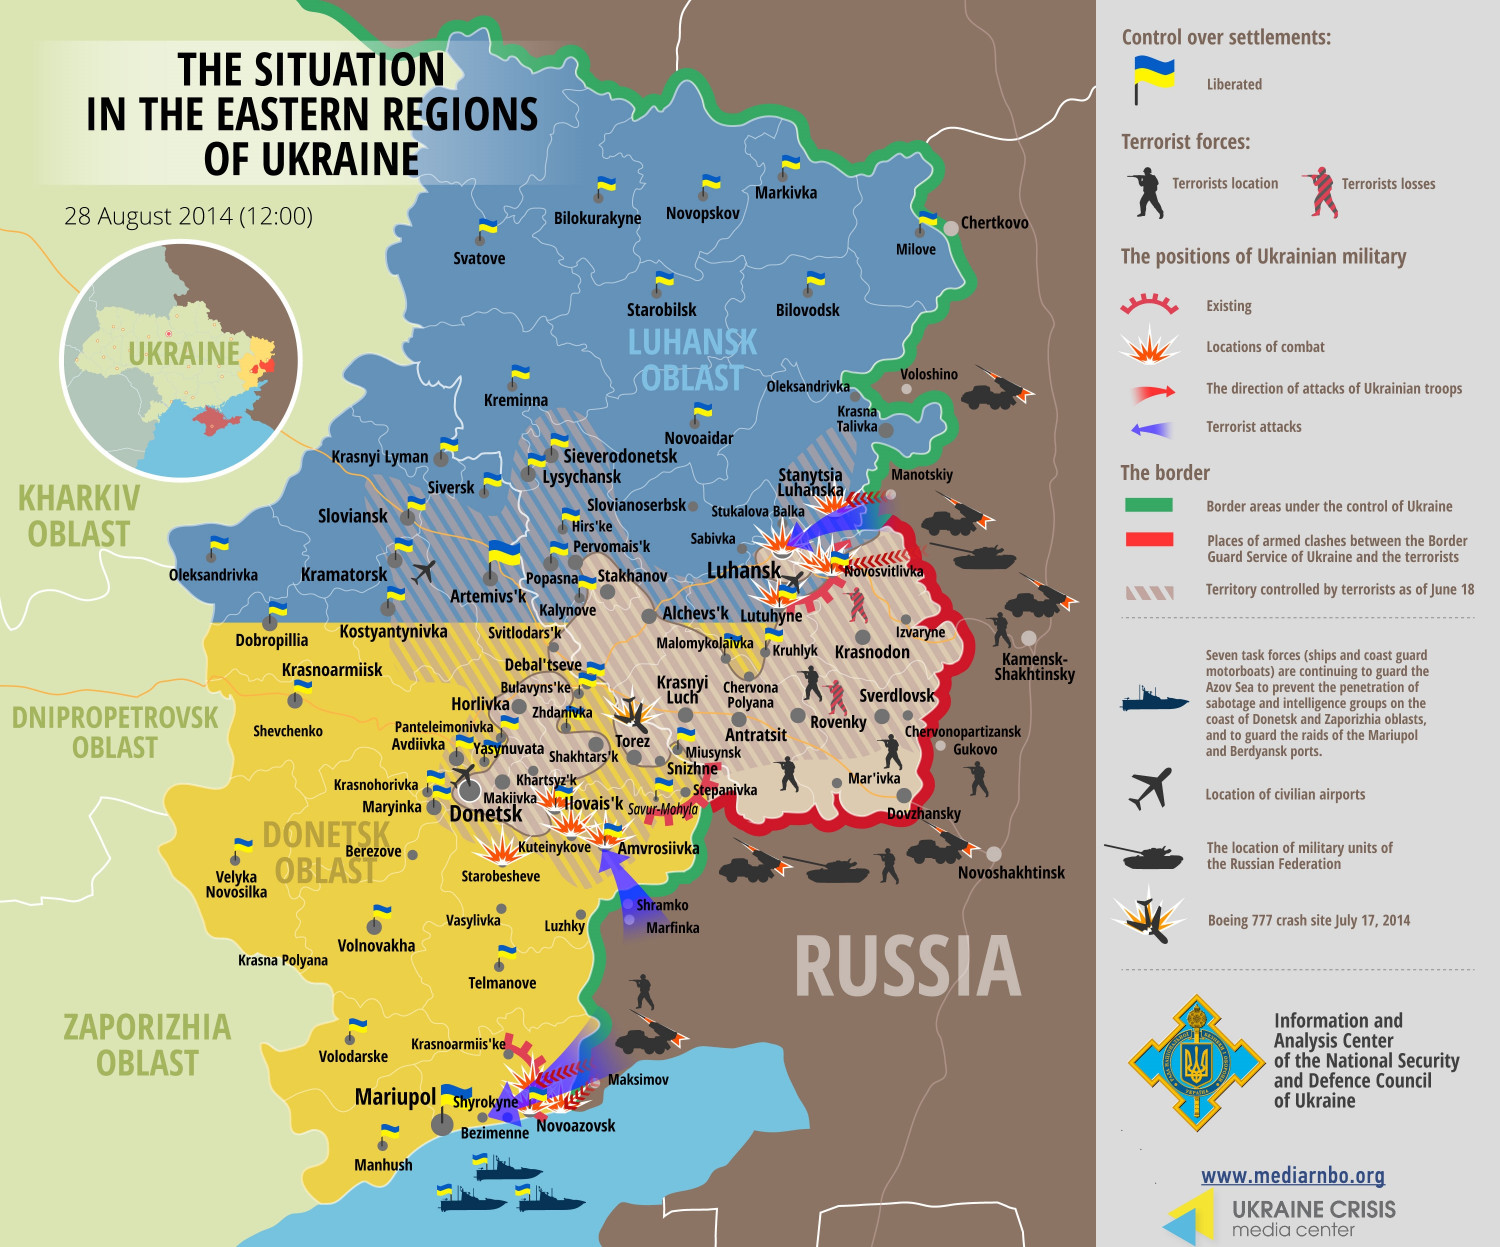 Situation in Eastern Regions of Ukraine, August 28 Infographic